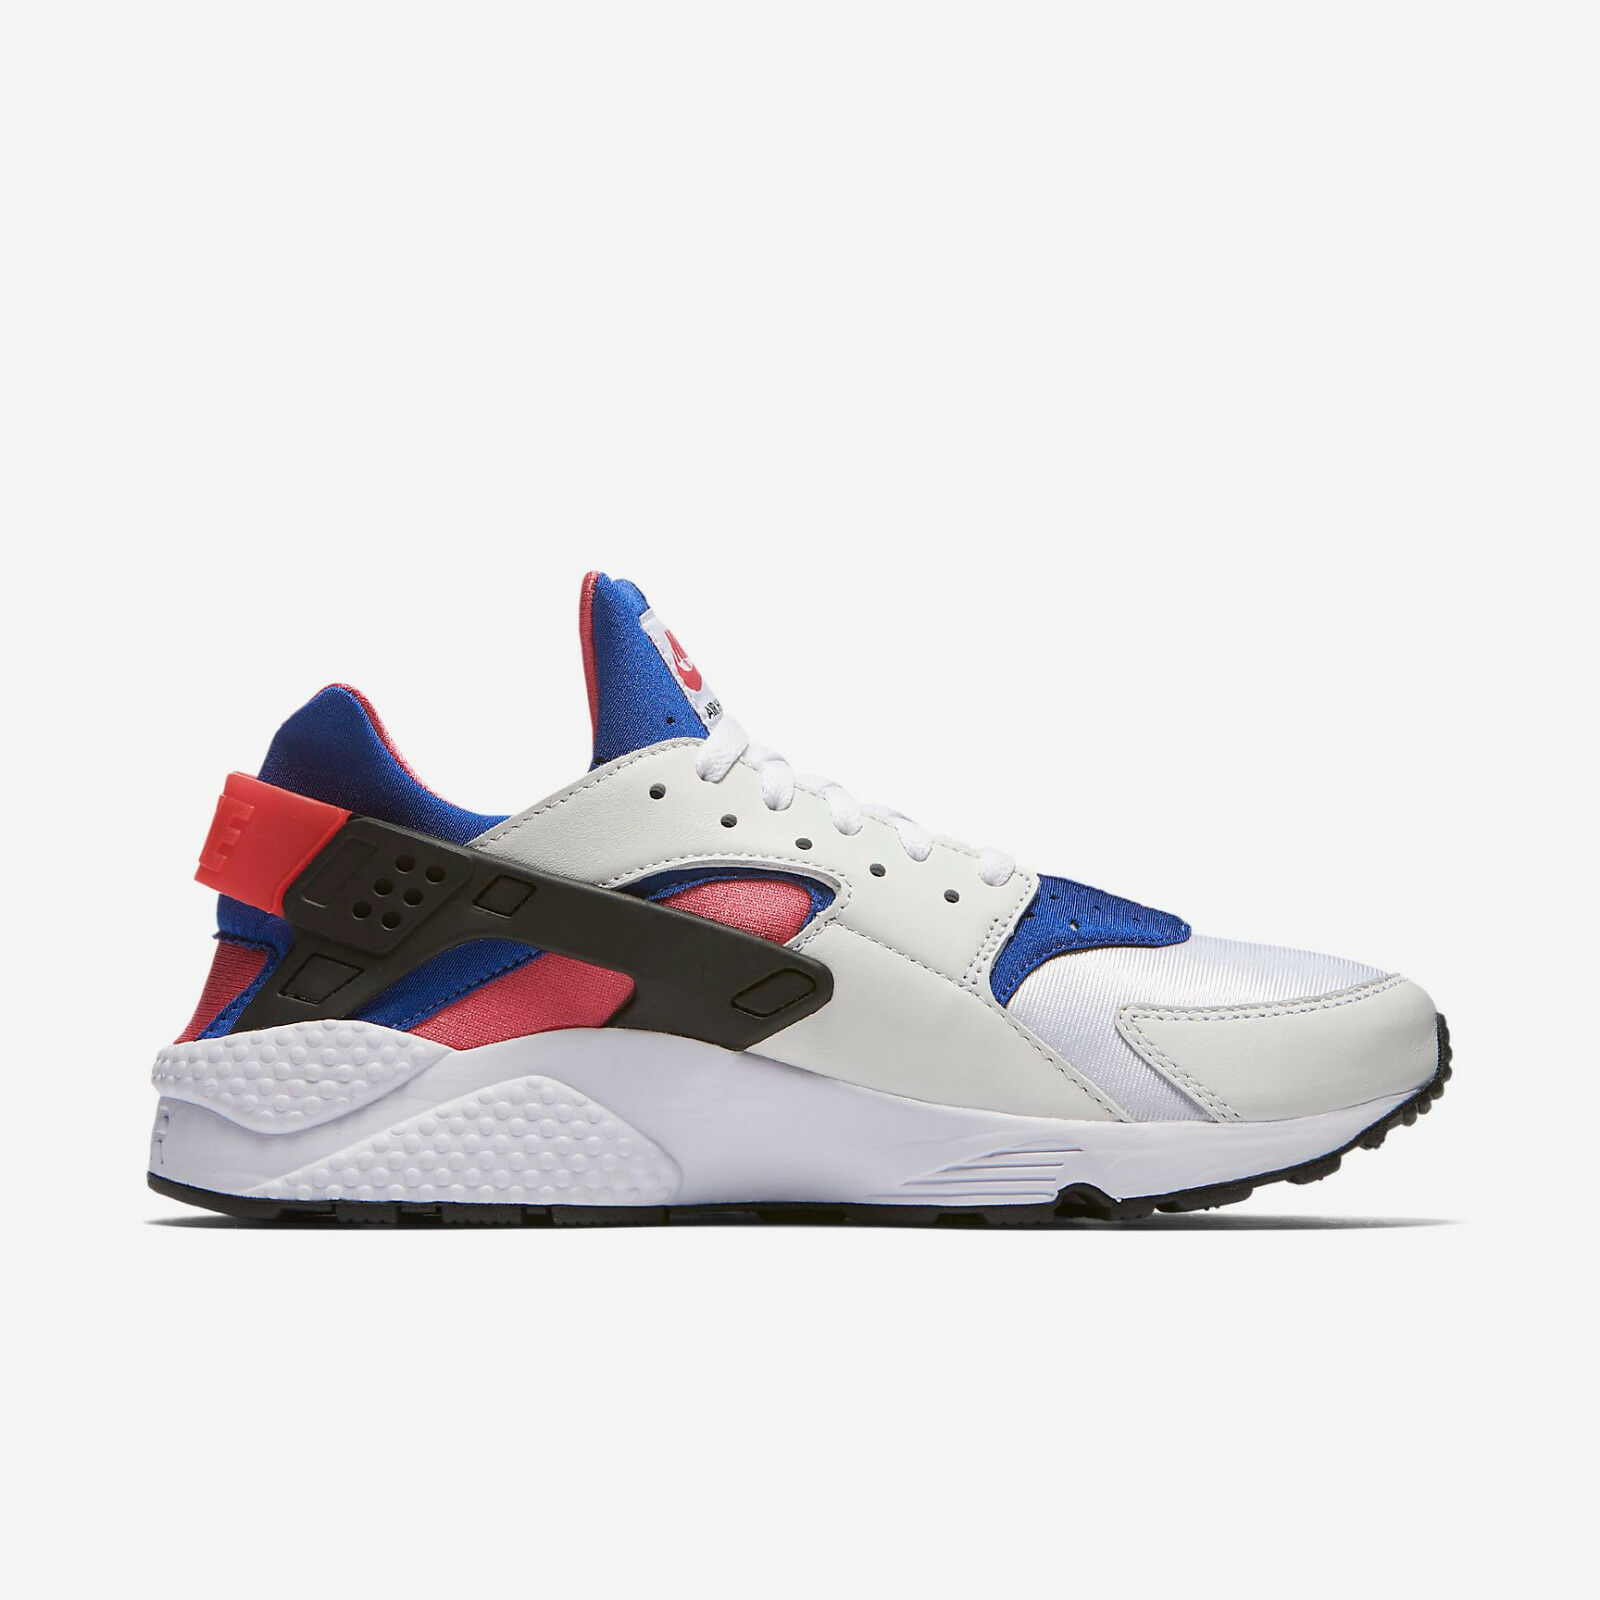 NIB NIKE Mens 9 AIR HUARACHE RUN '91 QS AH8049 100 LIFESTYLE SHOES MSRP